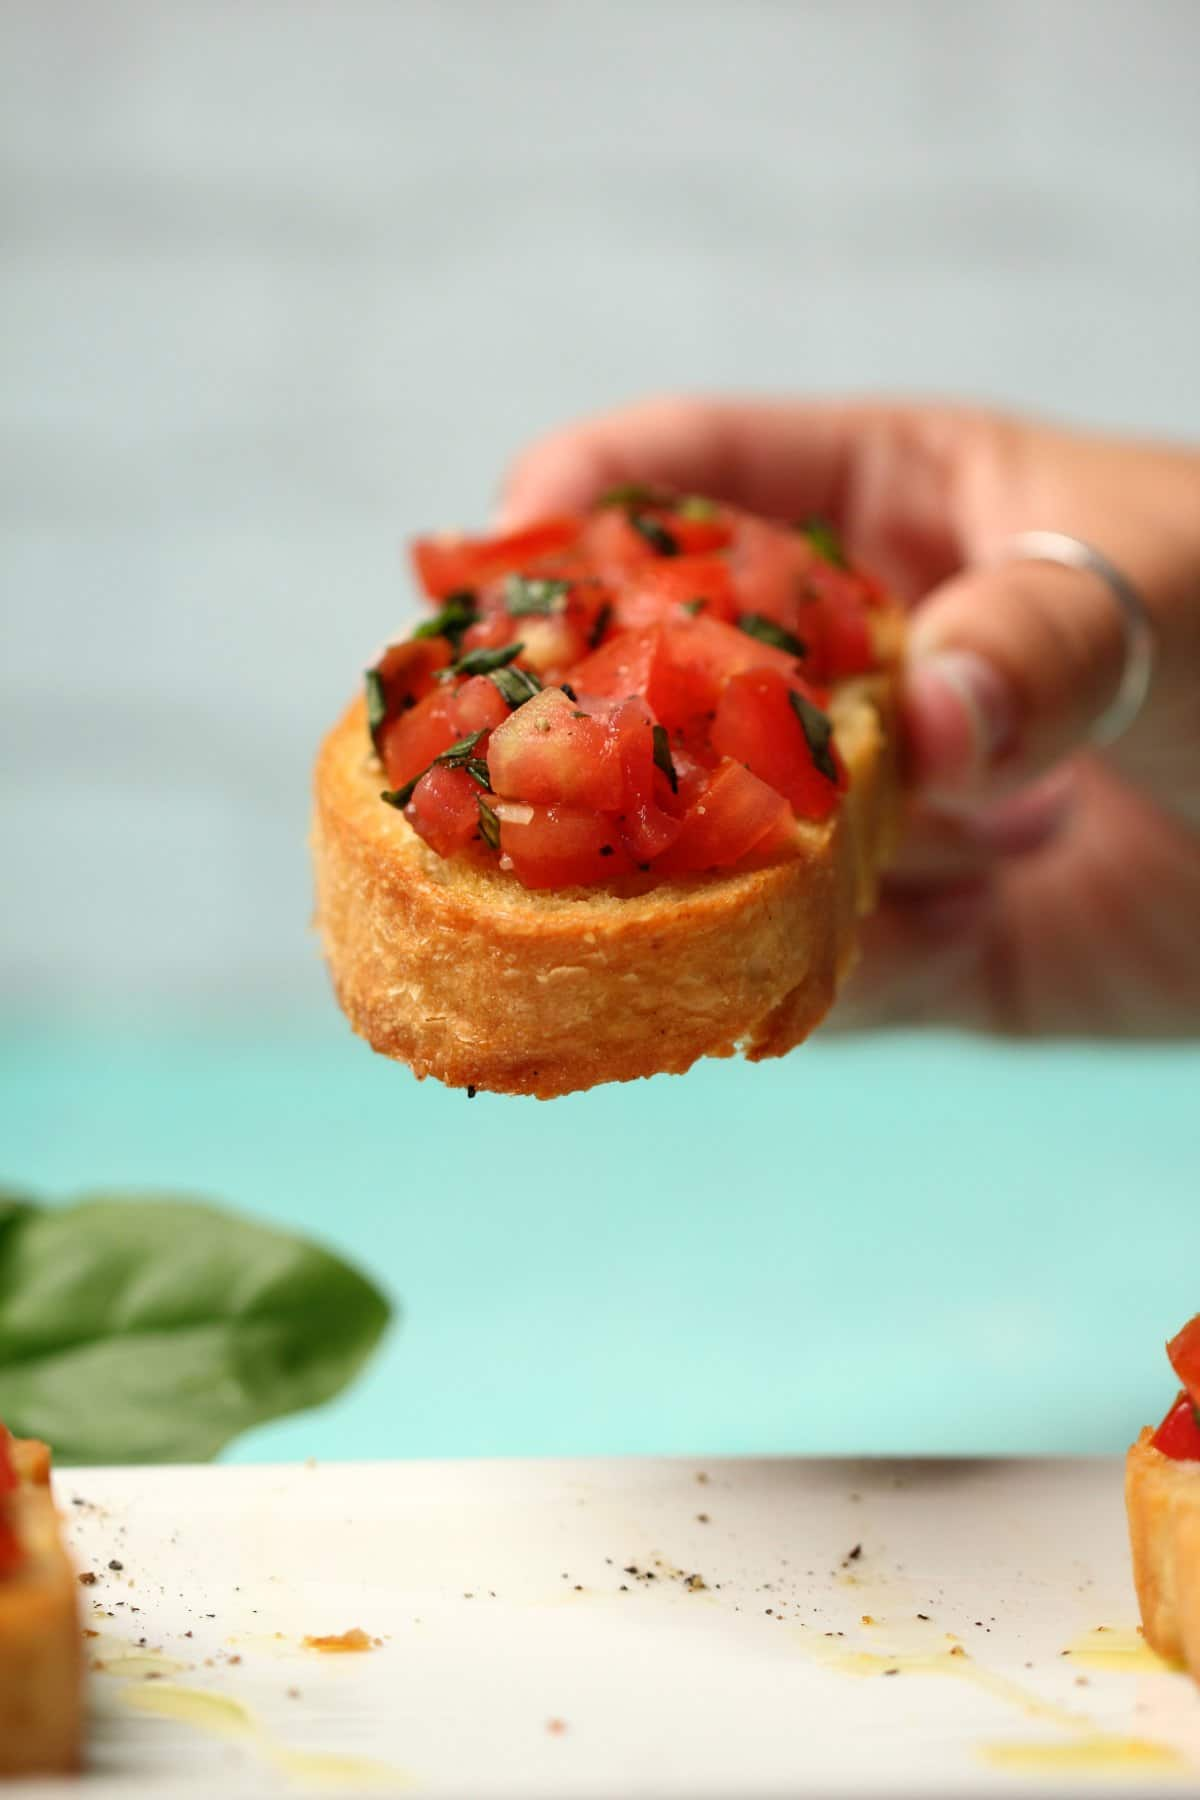 A slice of vegan bruschetta.